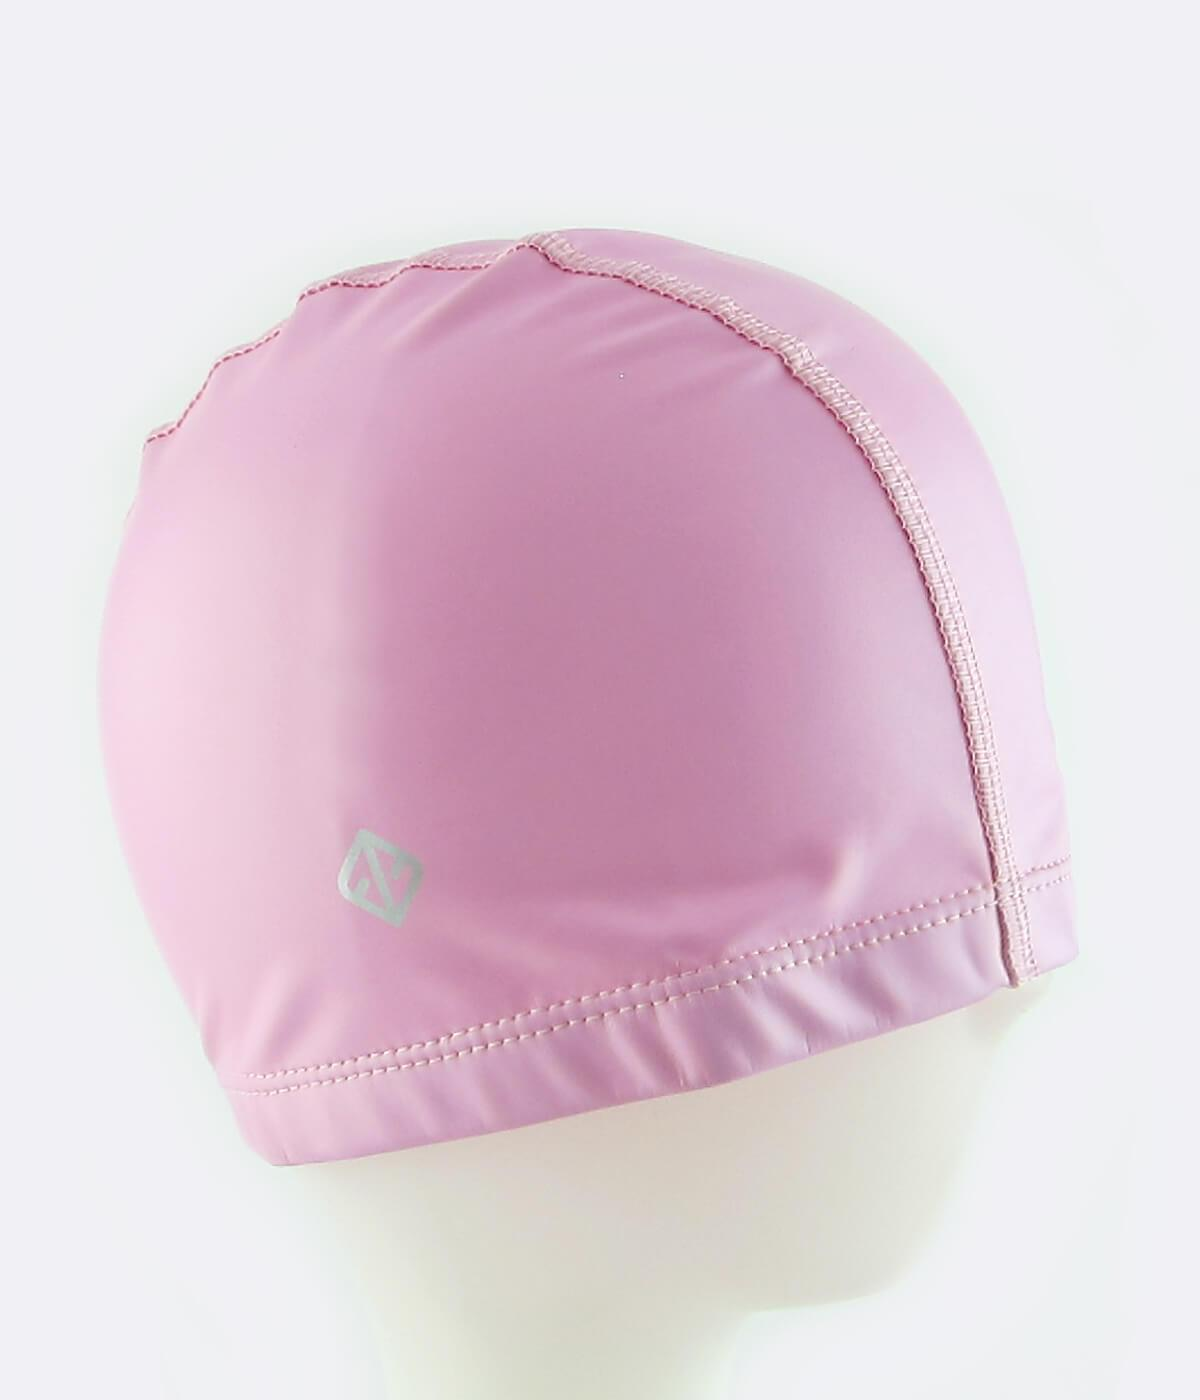 PU Coated Swimming Cap in Light Pink - FUNFIT